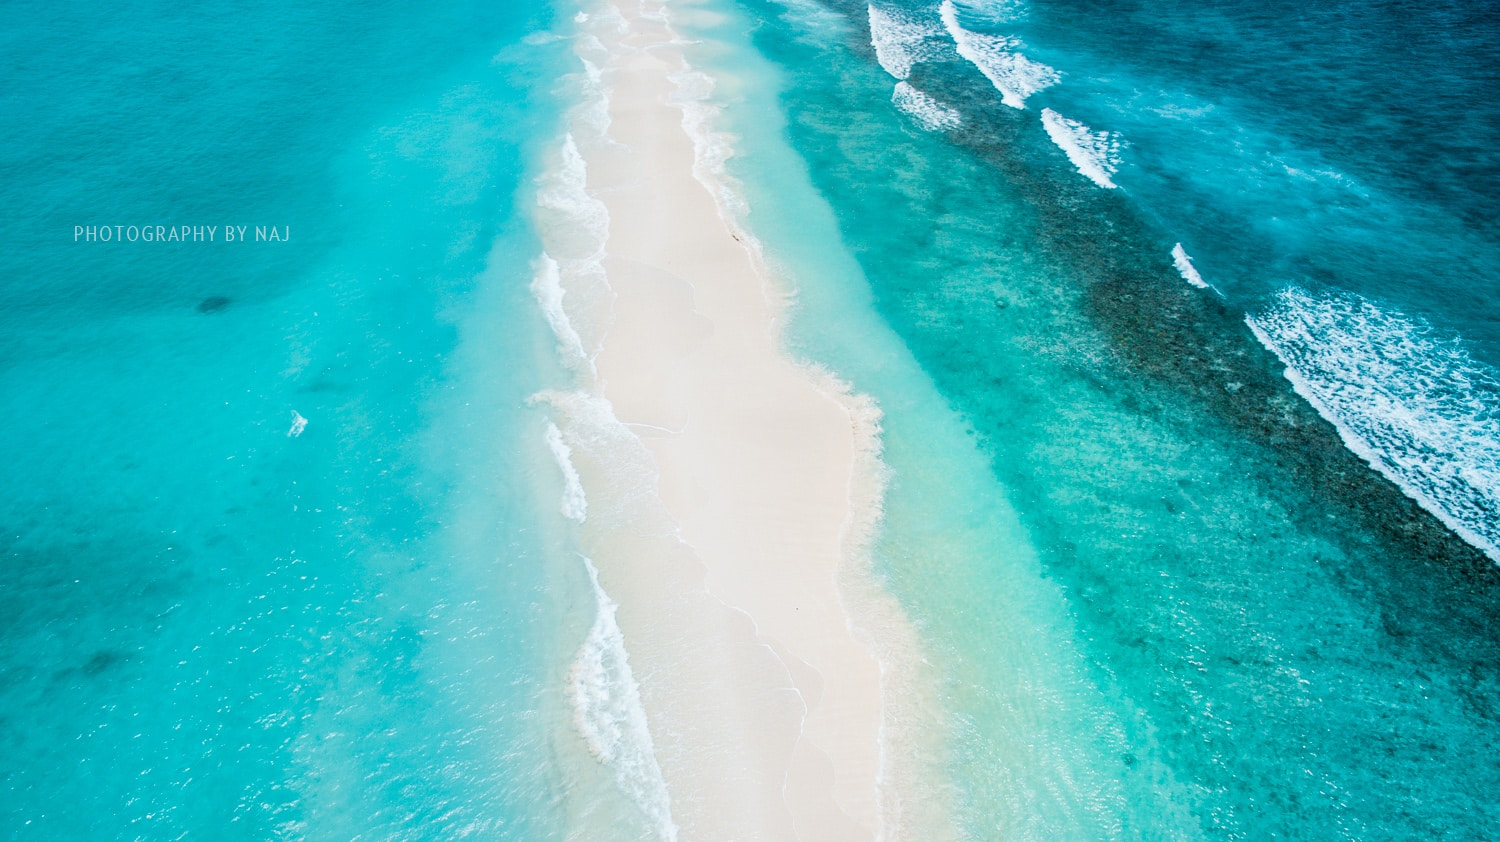 Sandbank lapped on both sides by the turquoise Indian Ocean in the Maldives